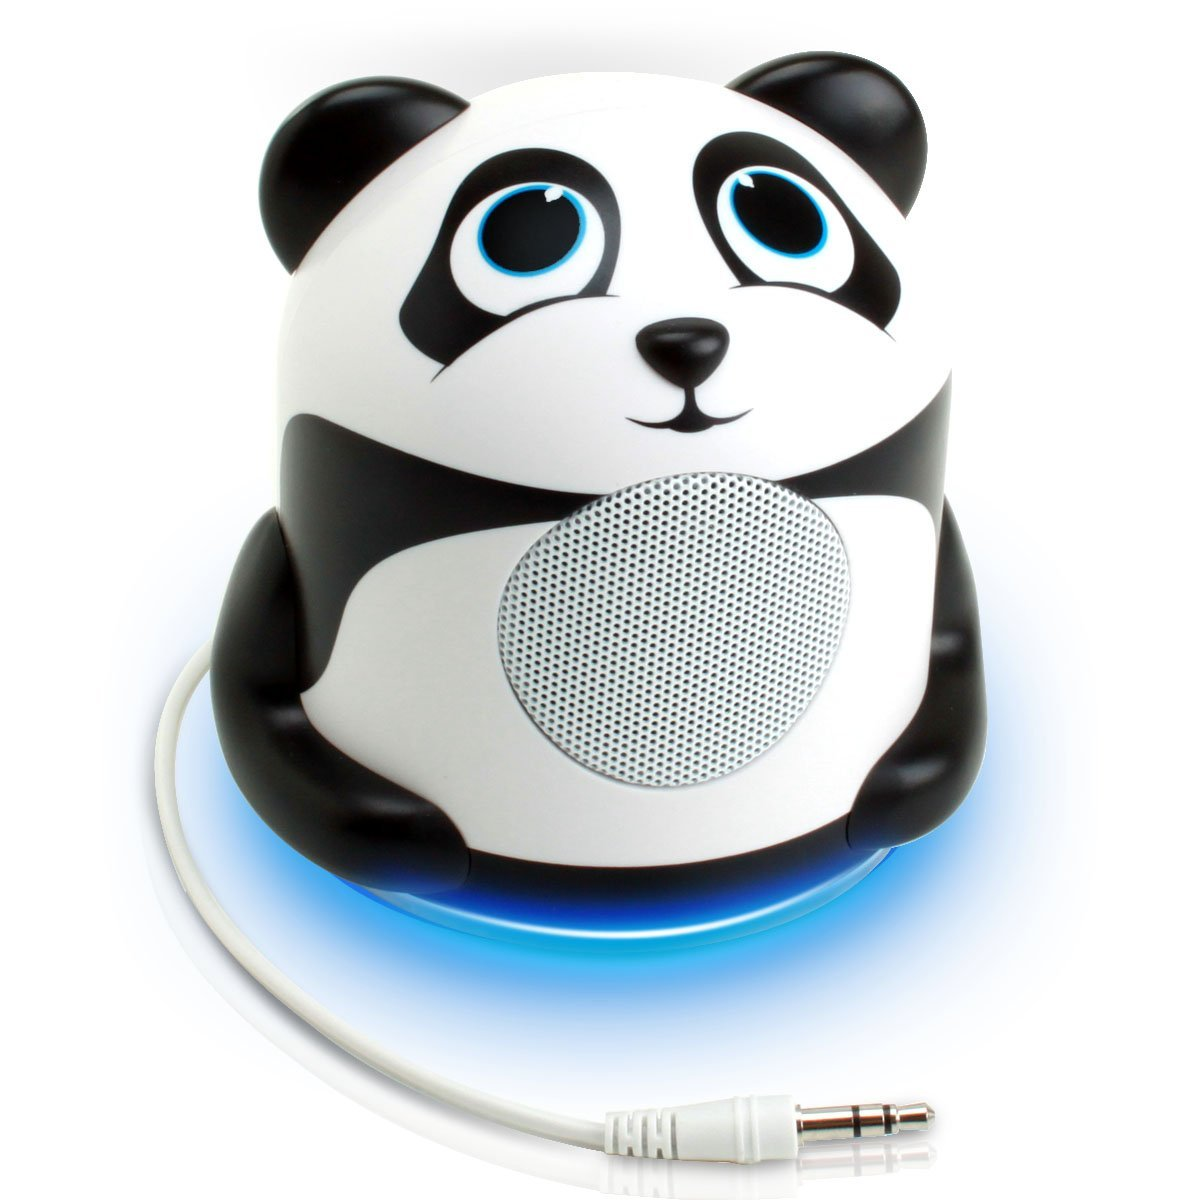 15 Cool Panda Inspired Products And Designs